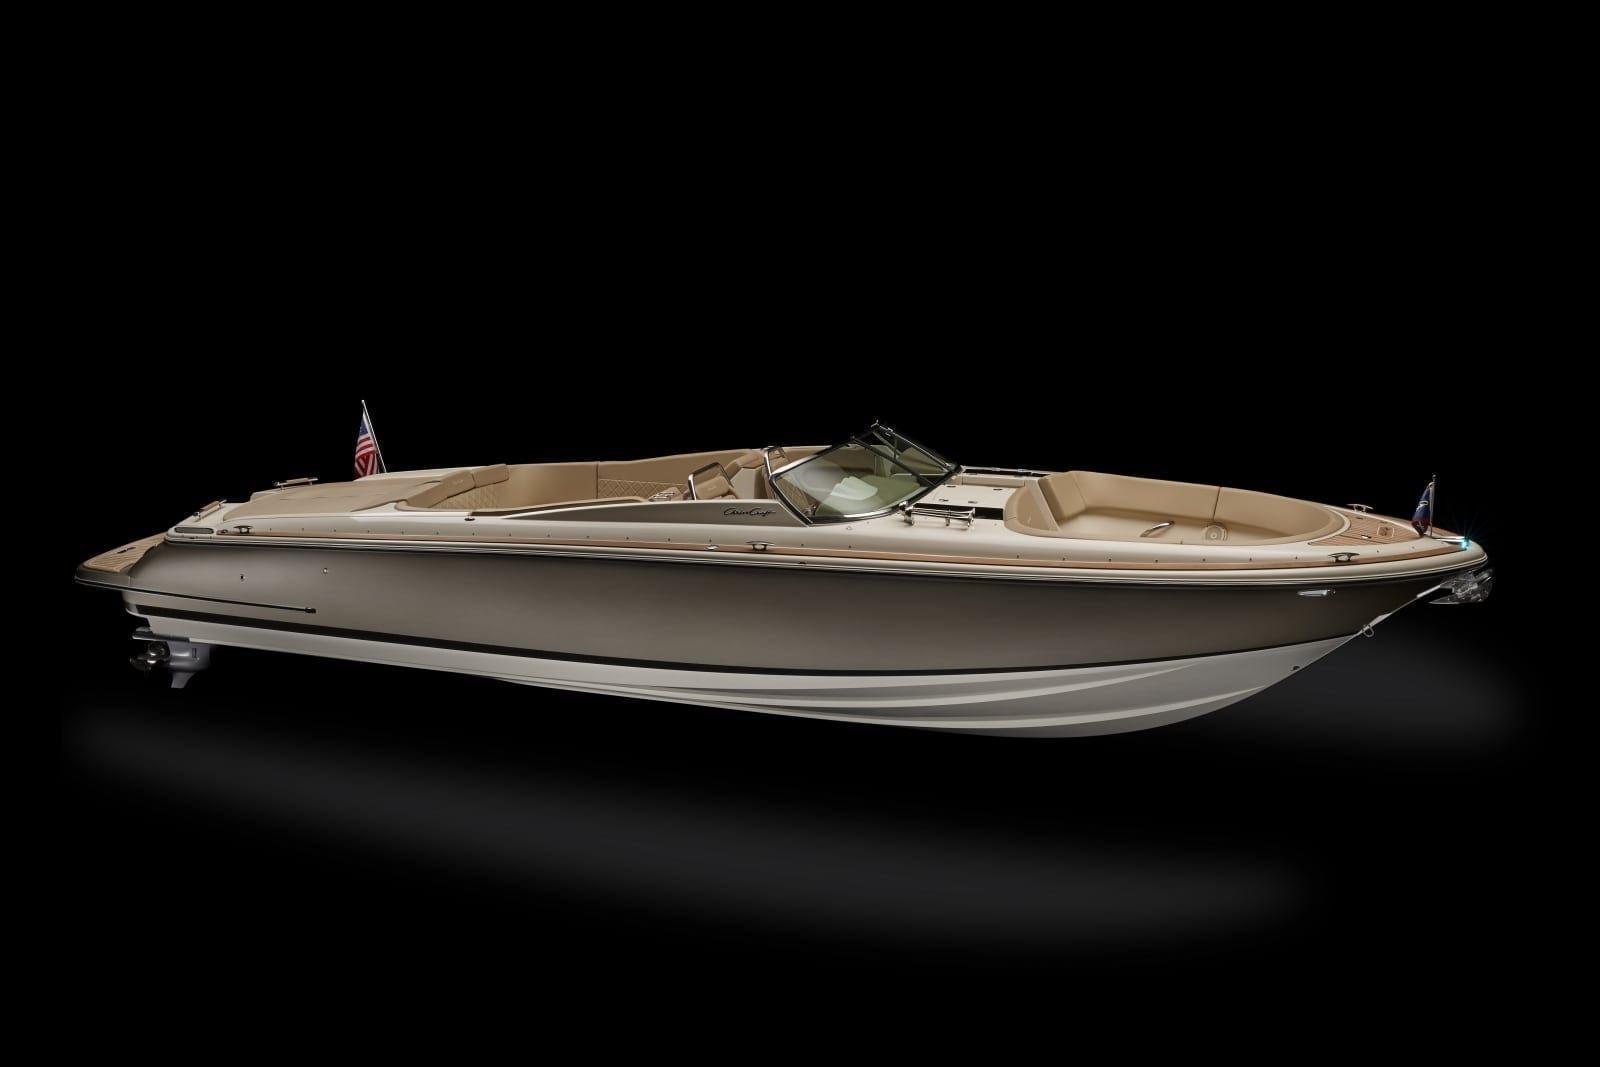 Chris Craft Launch 34 Stern Starboard Low Profile View